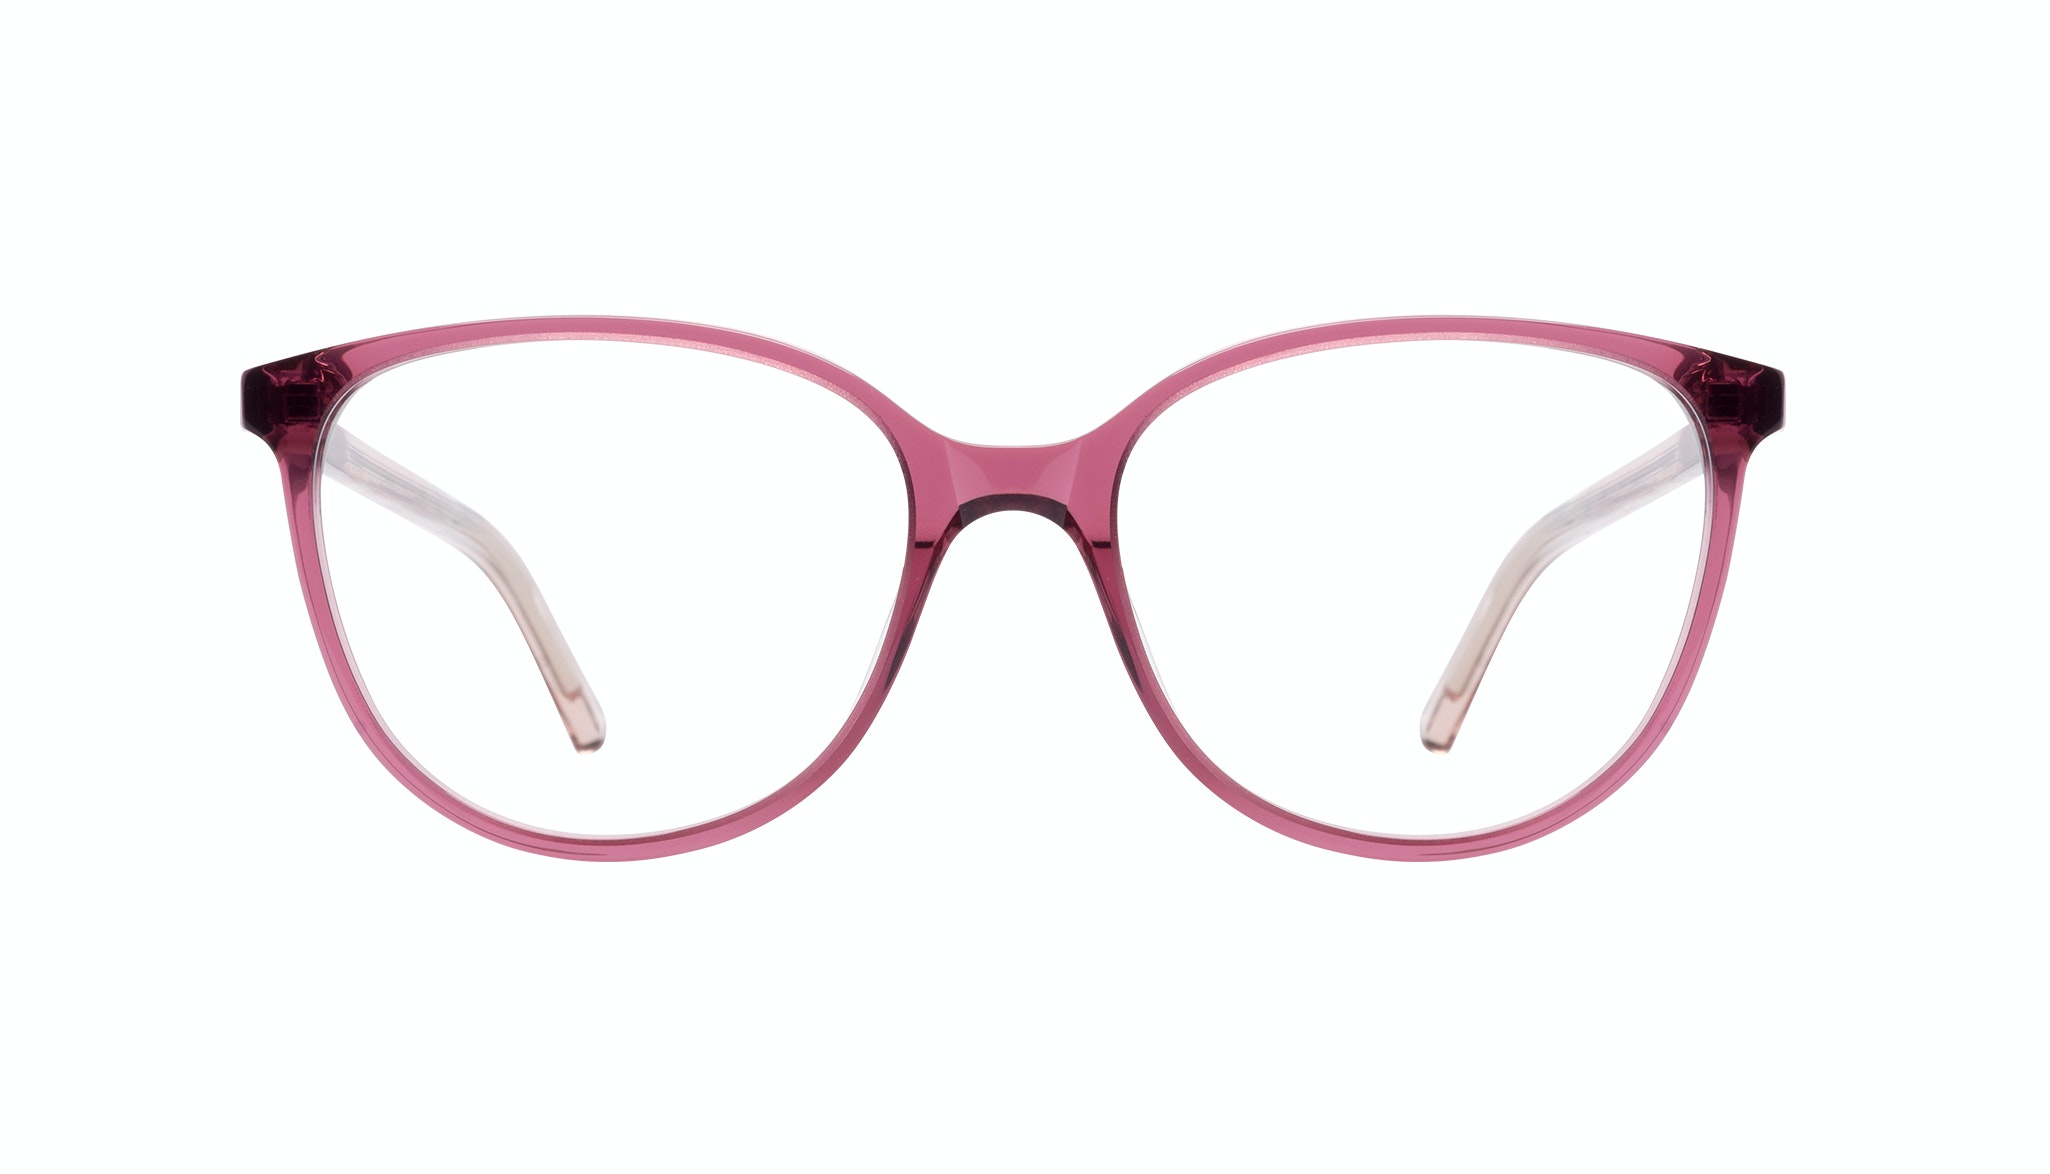 Affordable Fashion Glasses Round Eyeglasses Women Imagine Petite Berry Front